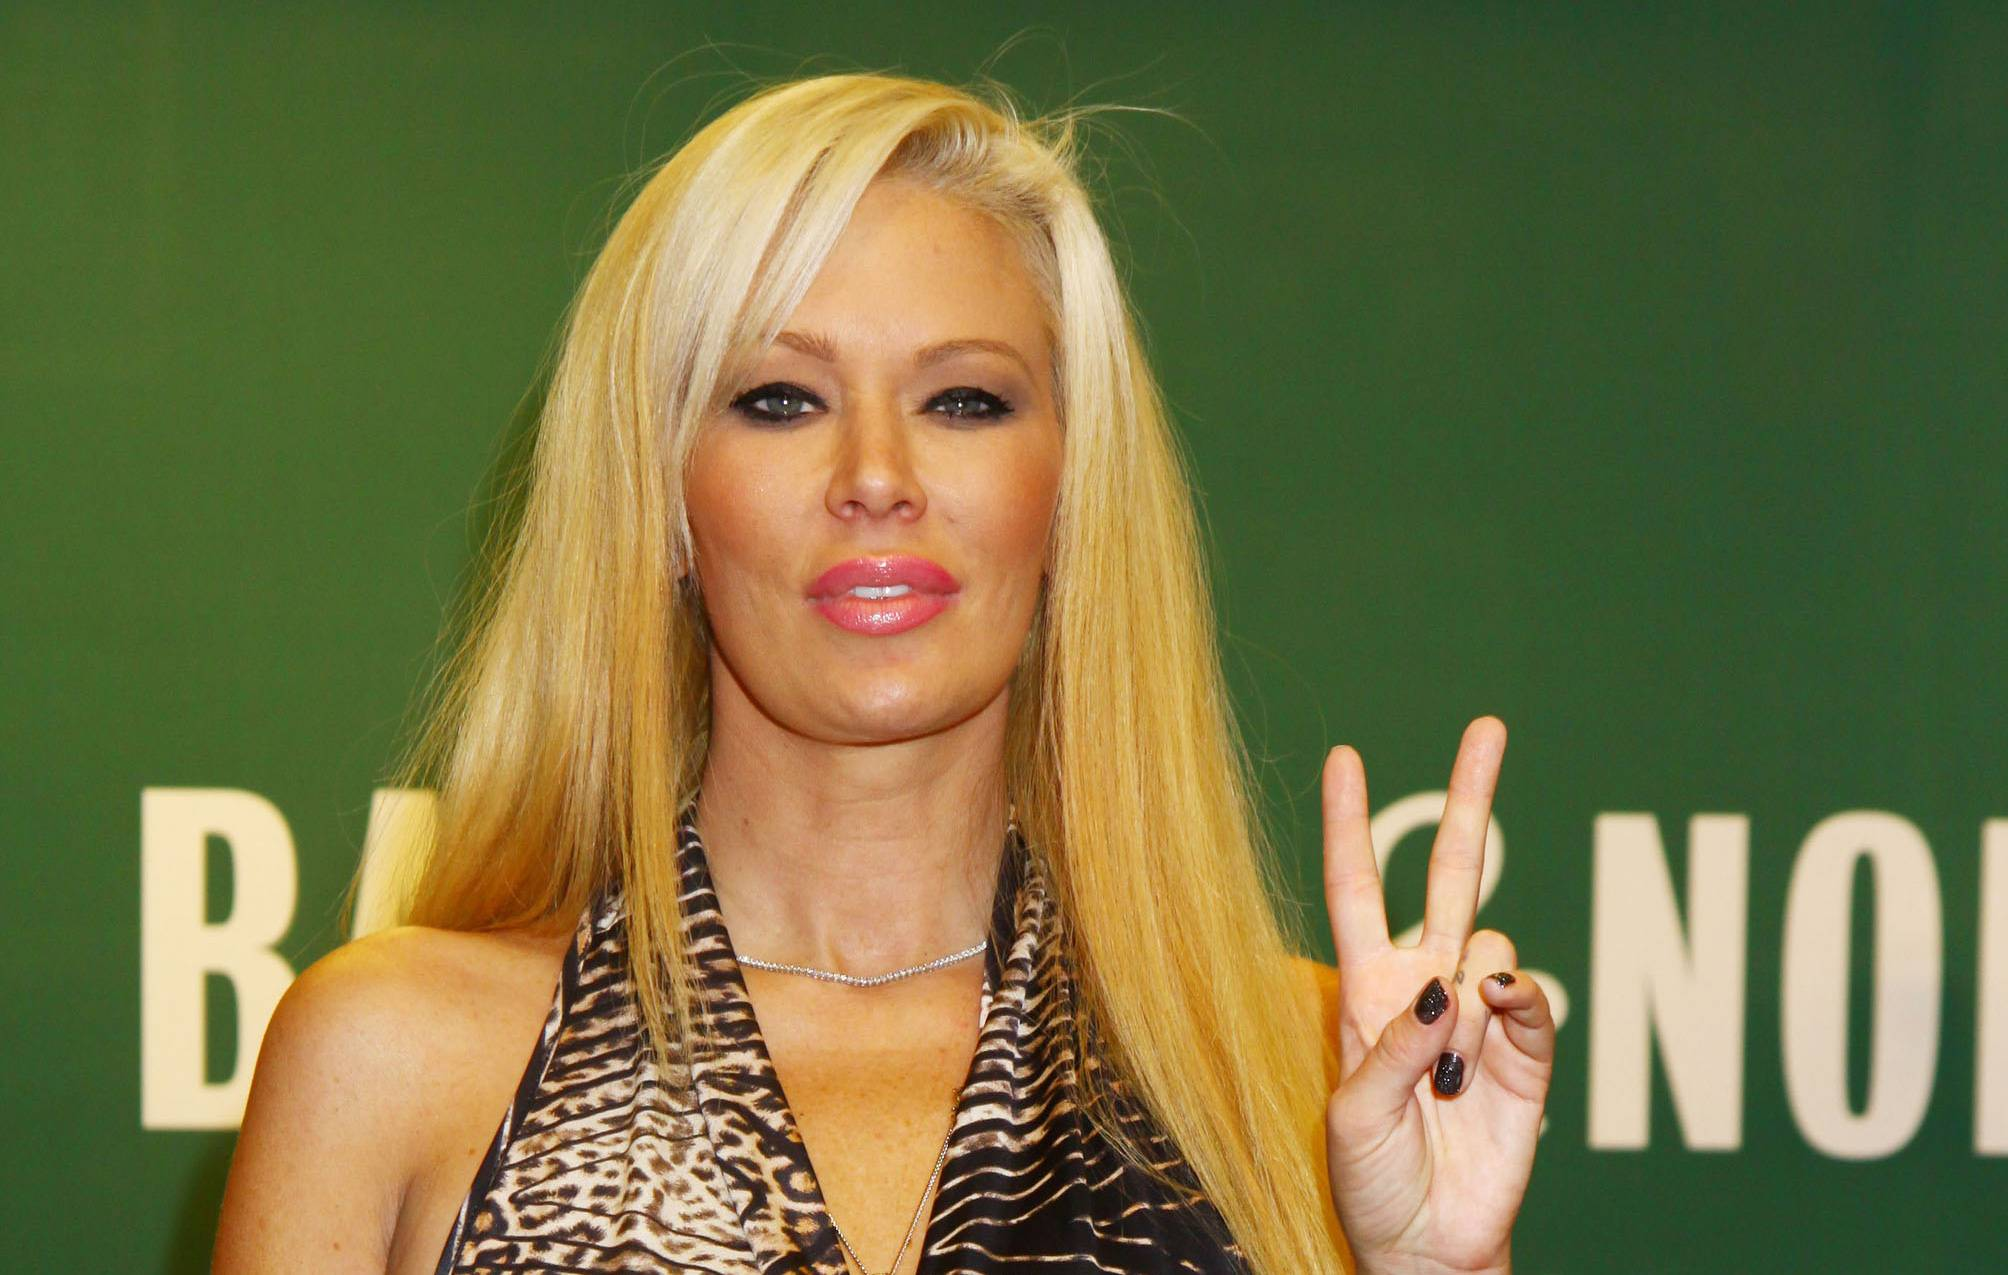 Jenna Jameson Going Back To Porn For Her Kids  The Blemish-2630